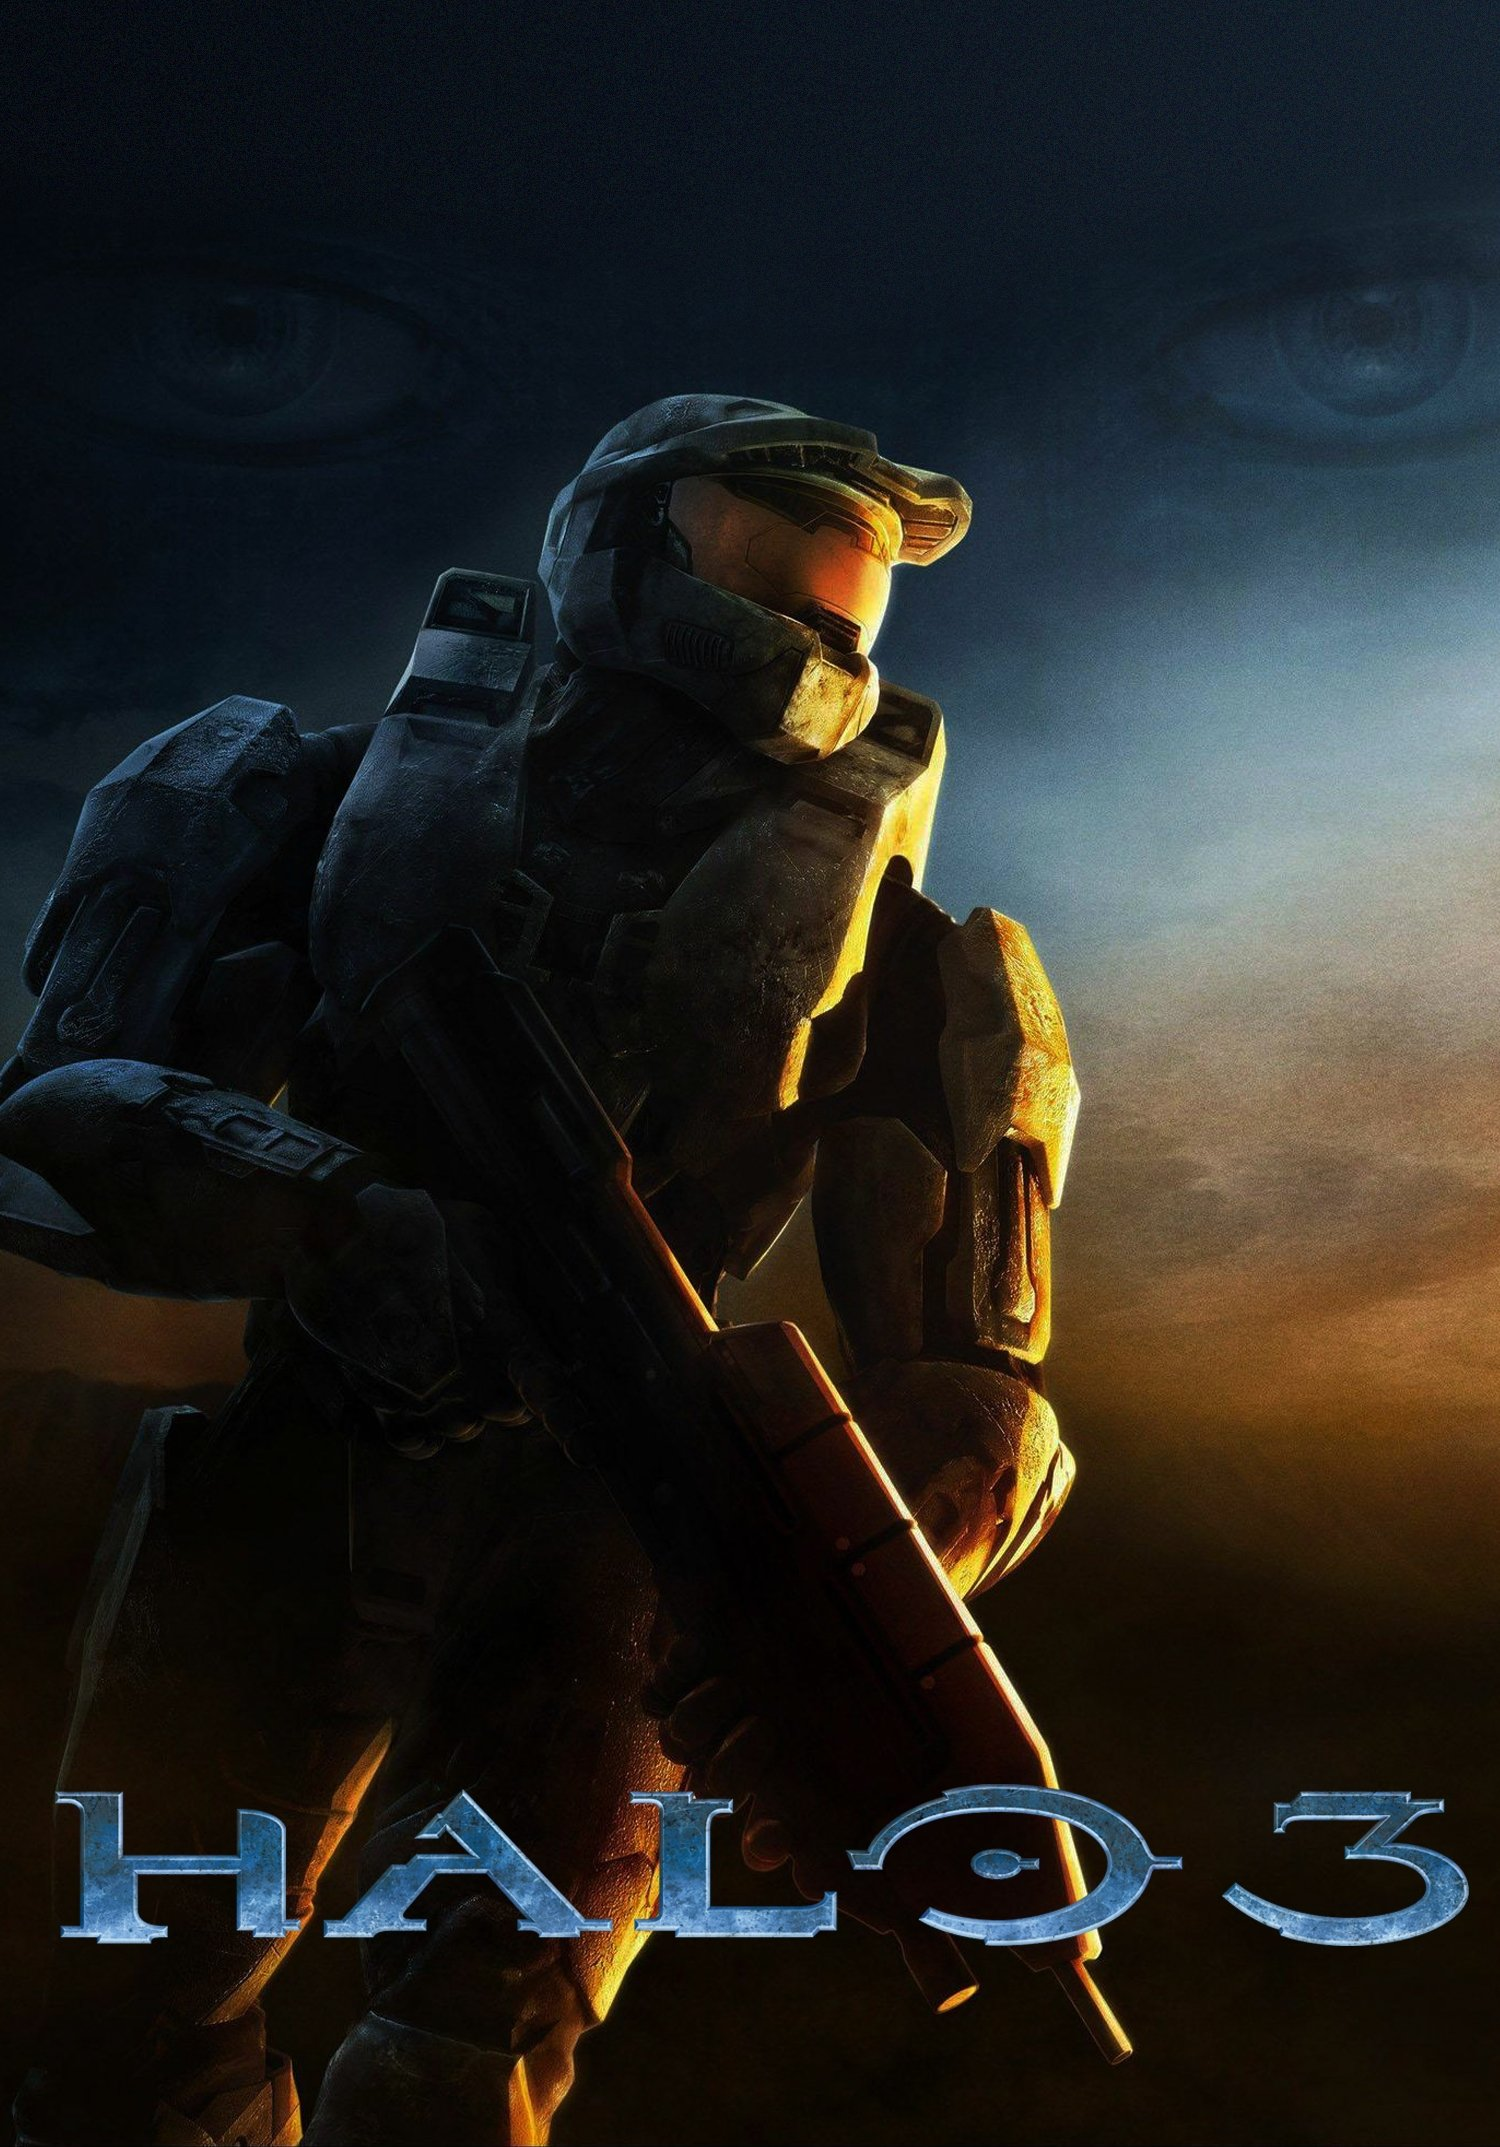 Poster for Halo: The Master Chief Collection - Halo 3